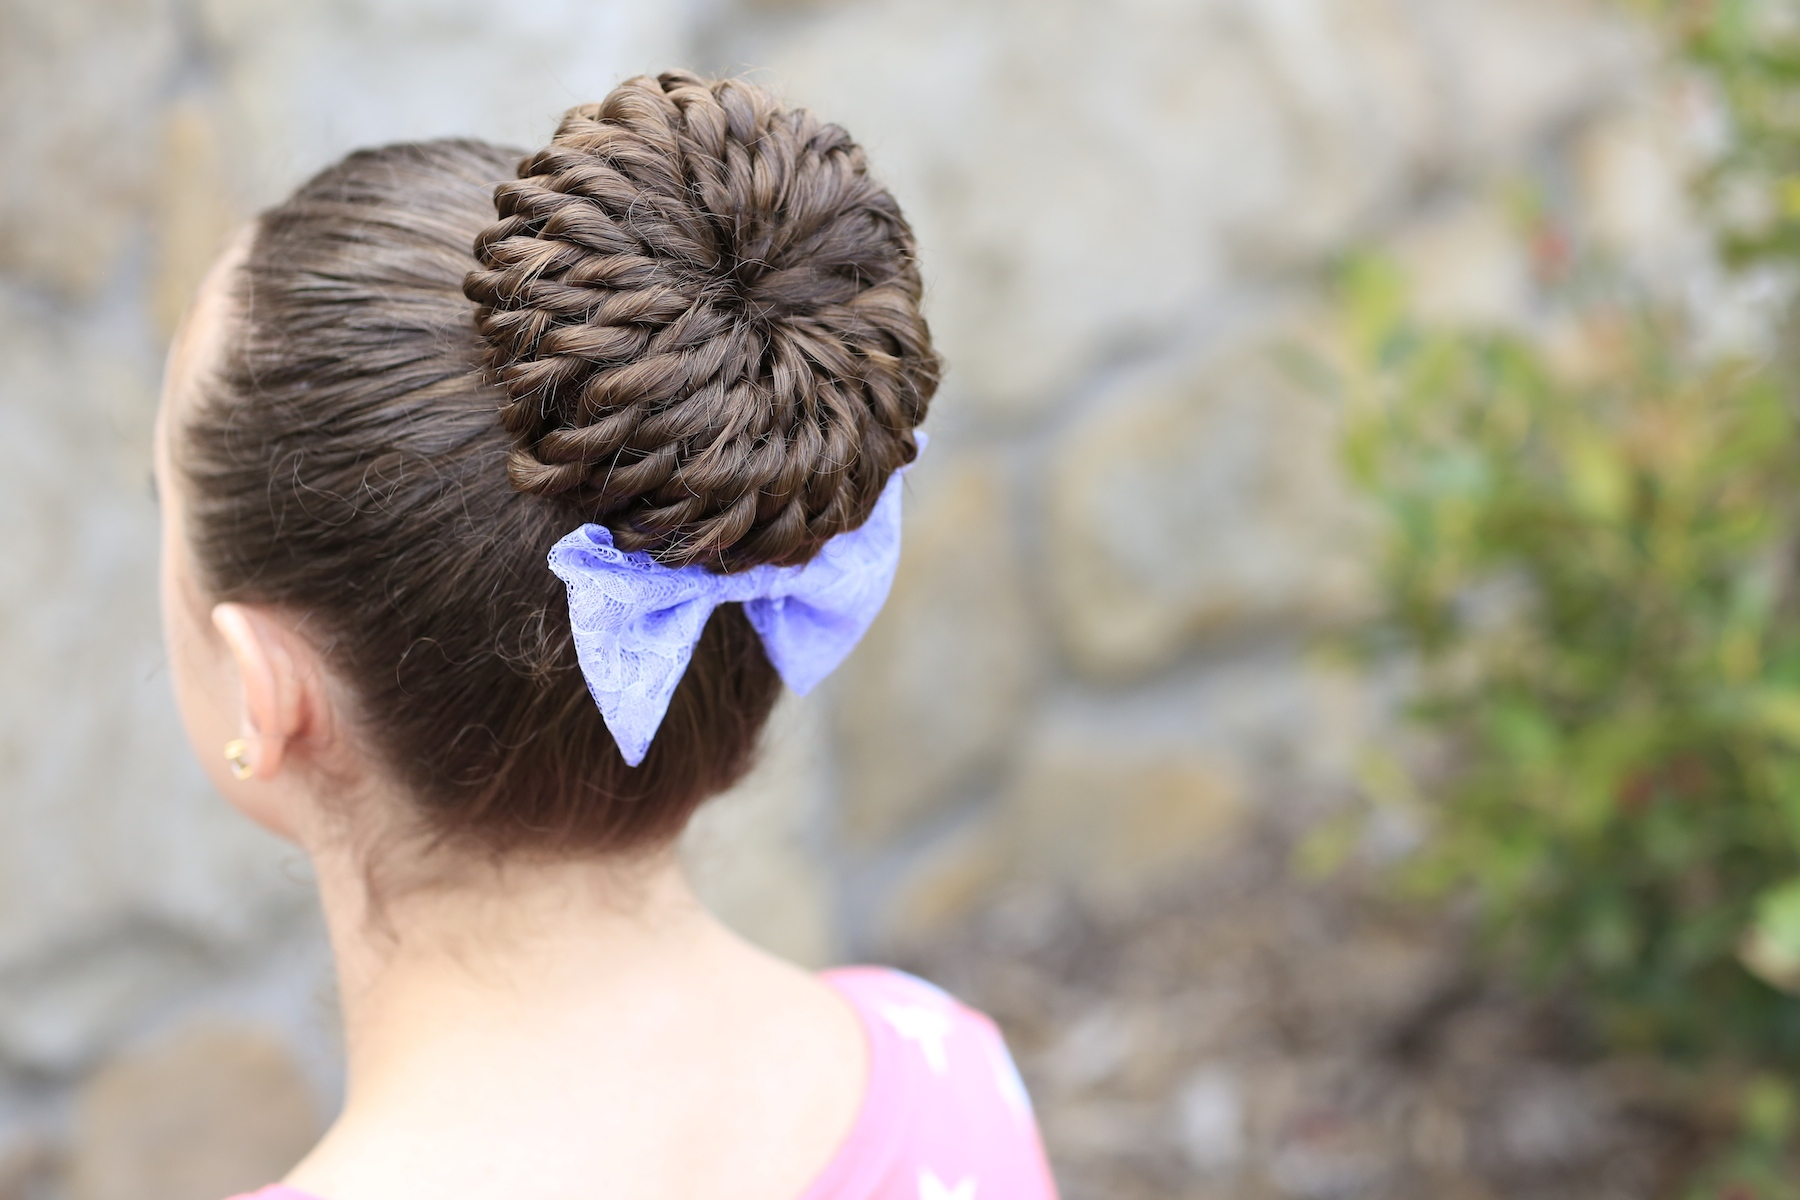 cute hairstyles 2017 : Gymnastics+Meet+Hairstyles ... to tag your own photos of this ...